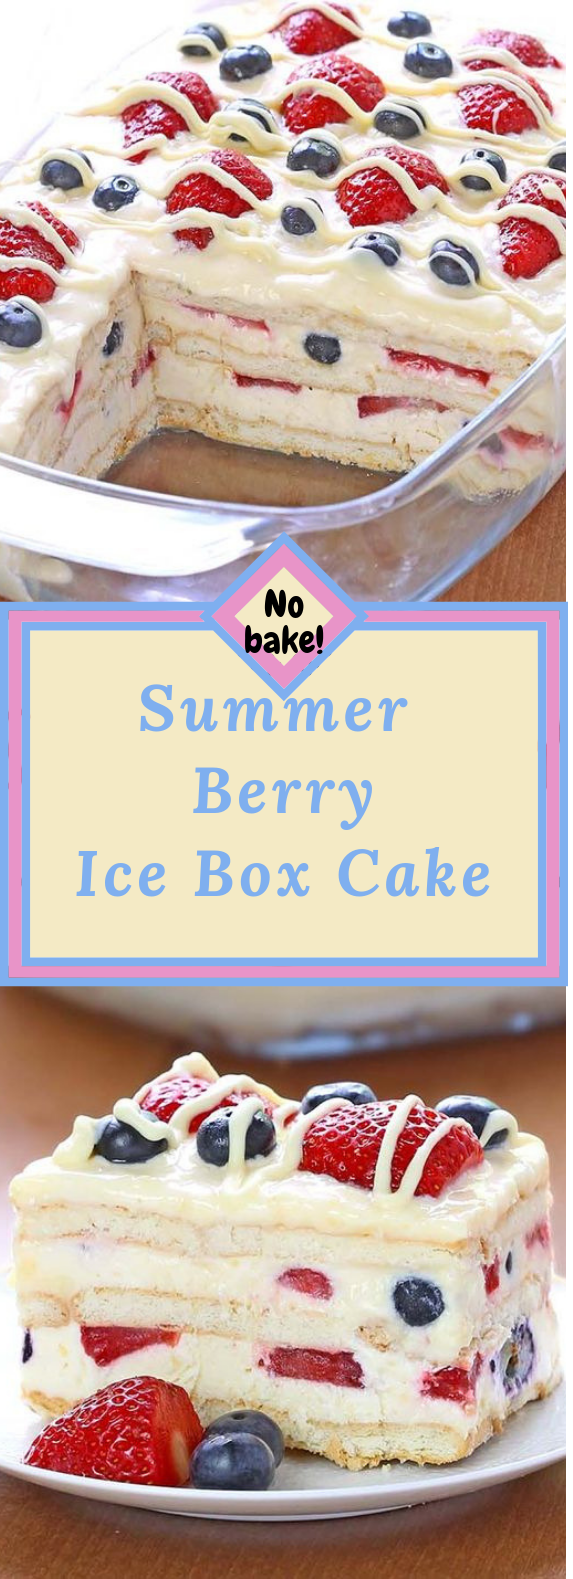 No Bake Summer Berry Icebox Cake #Dessert #Berries